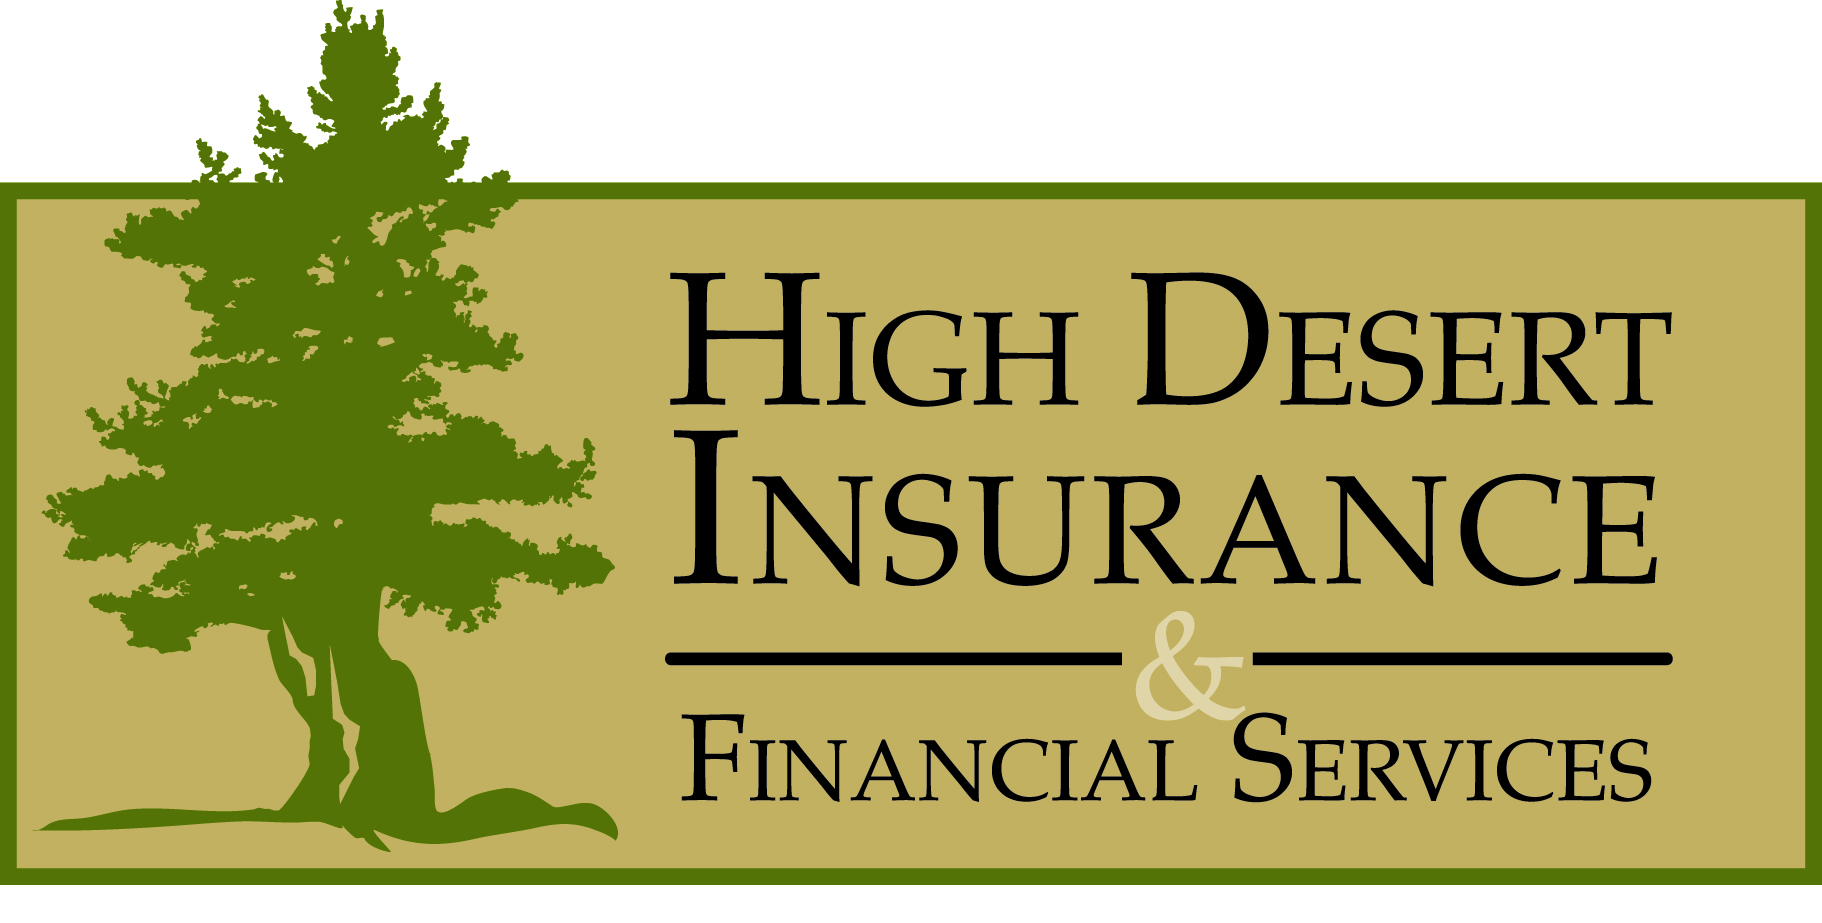 Hdi_new_logo_5-2009_002_color